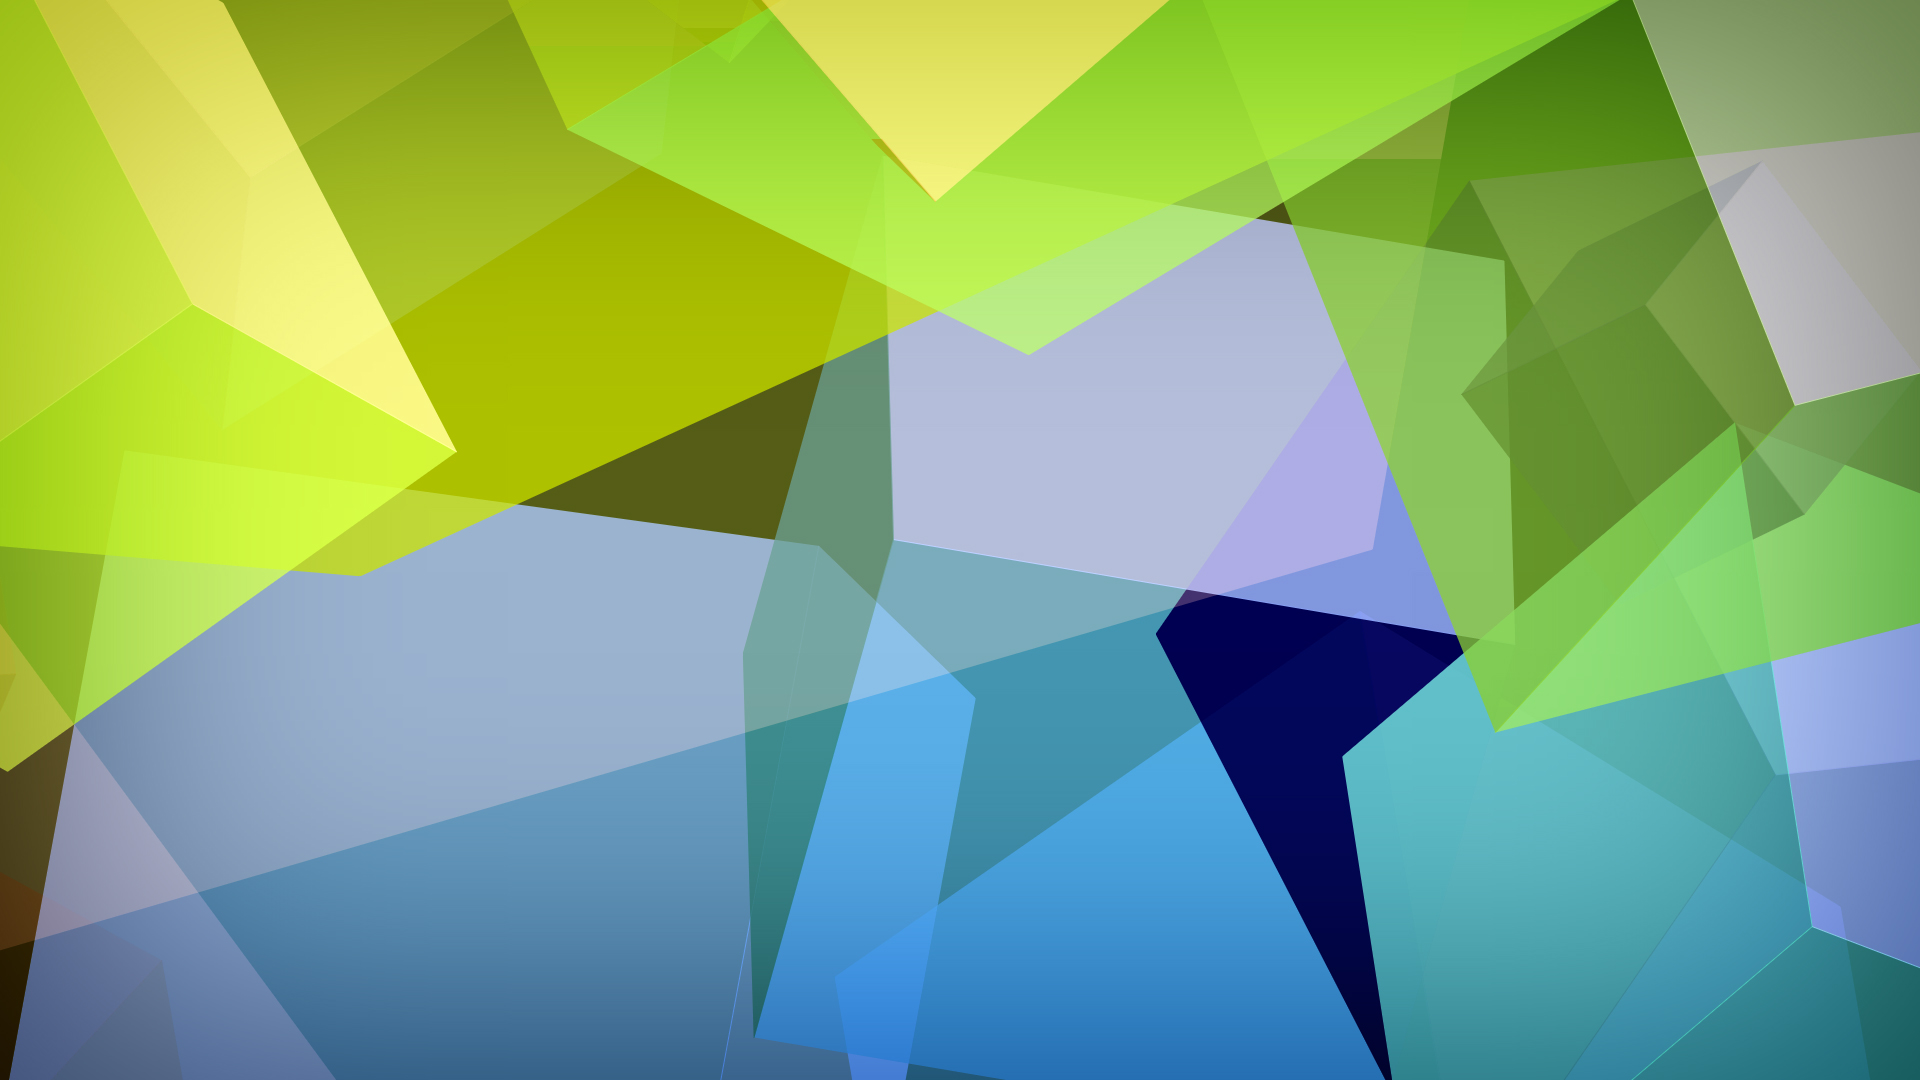 Abstract Geometric Shapes Backgrounds for Desktop